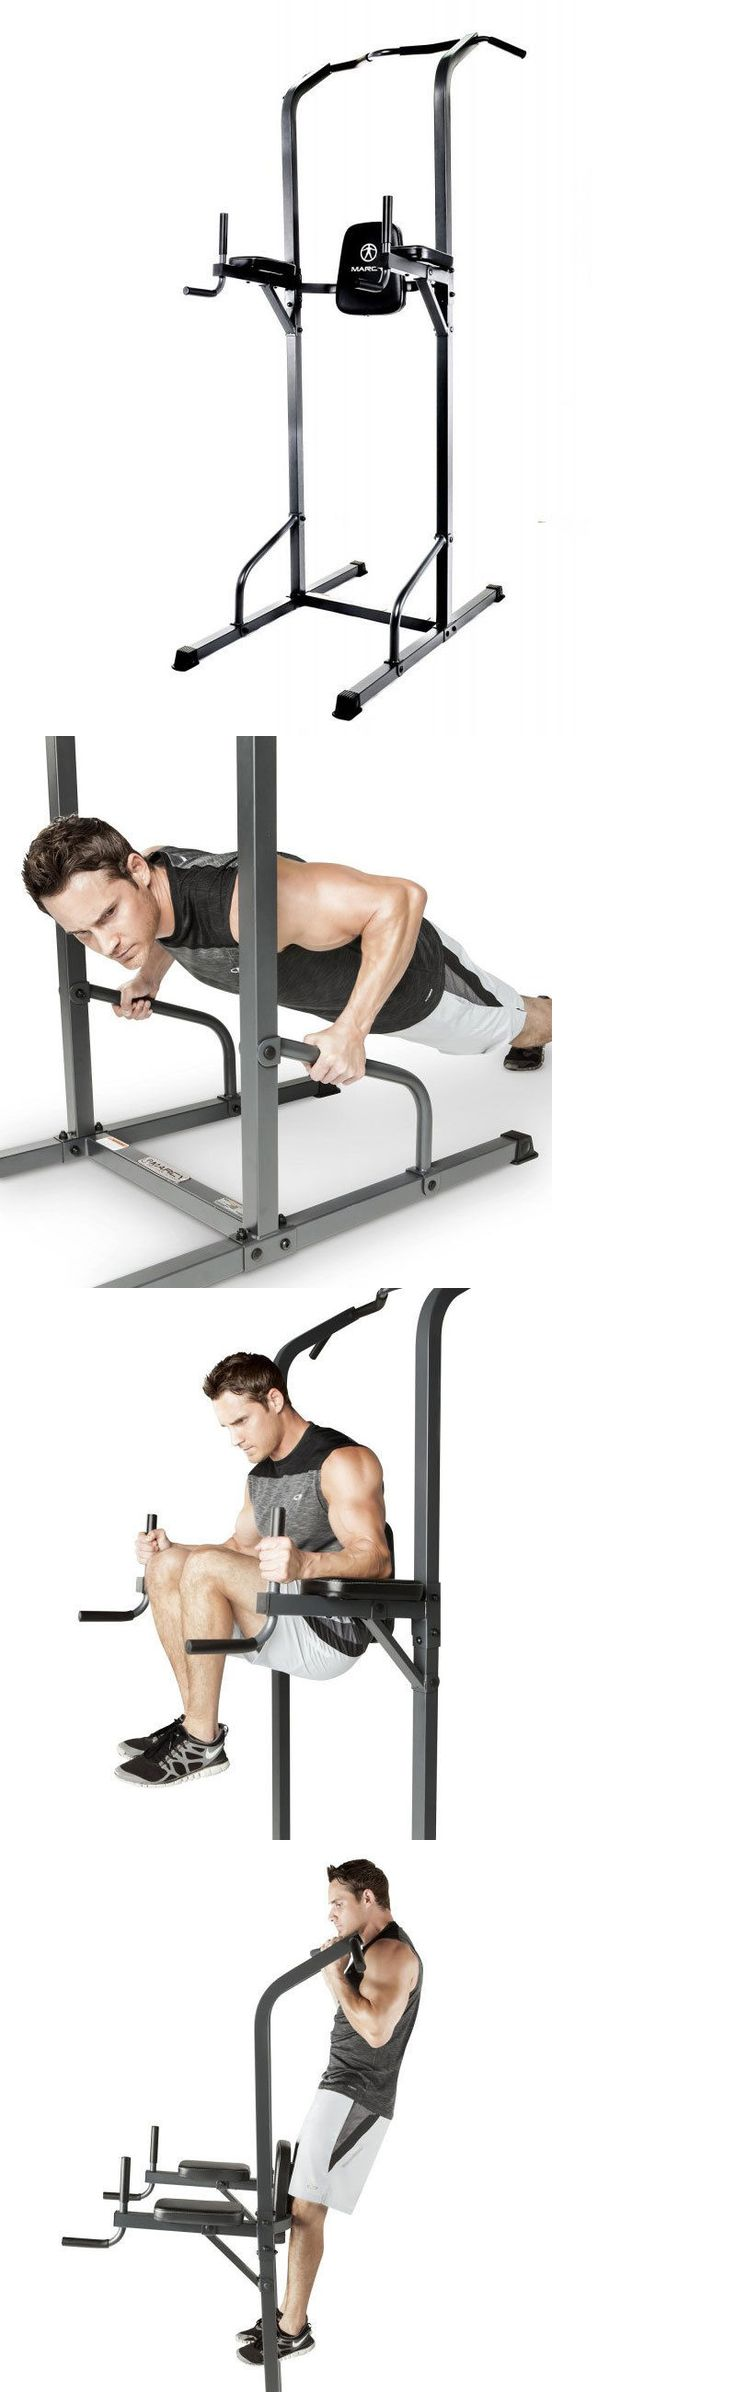 Home Gyms 158923: Marcy Power Tower Tc-3515 Workout Pull Up Push Dip Station Knee Raise Home Gym -> BUY IT NOW ONLY: $125.99 on eBay!